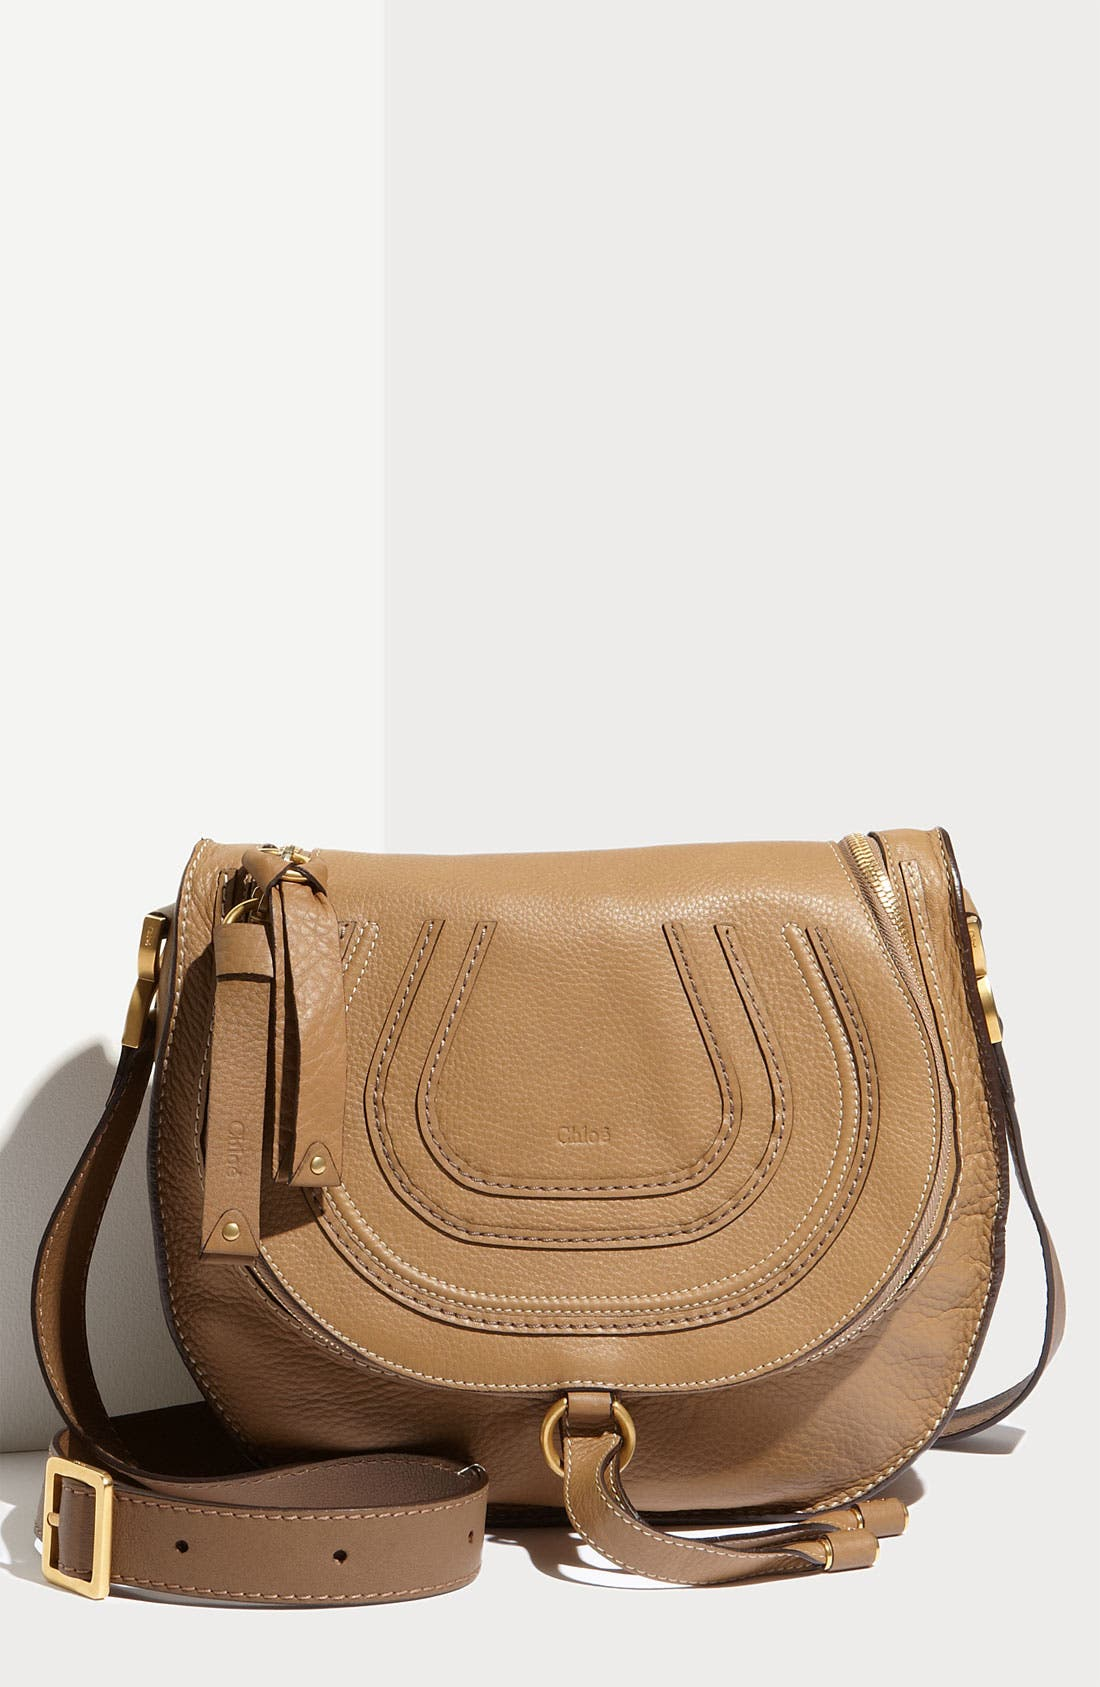 Main Image - Chloé 'Marcie' Leather Crossbody Bag